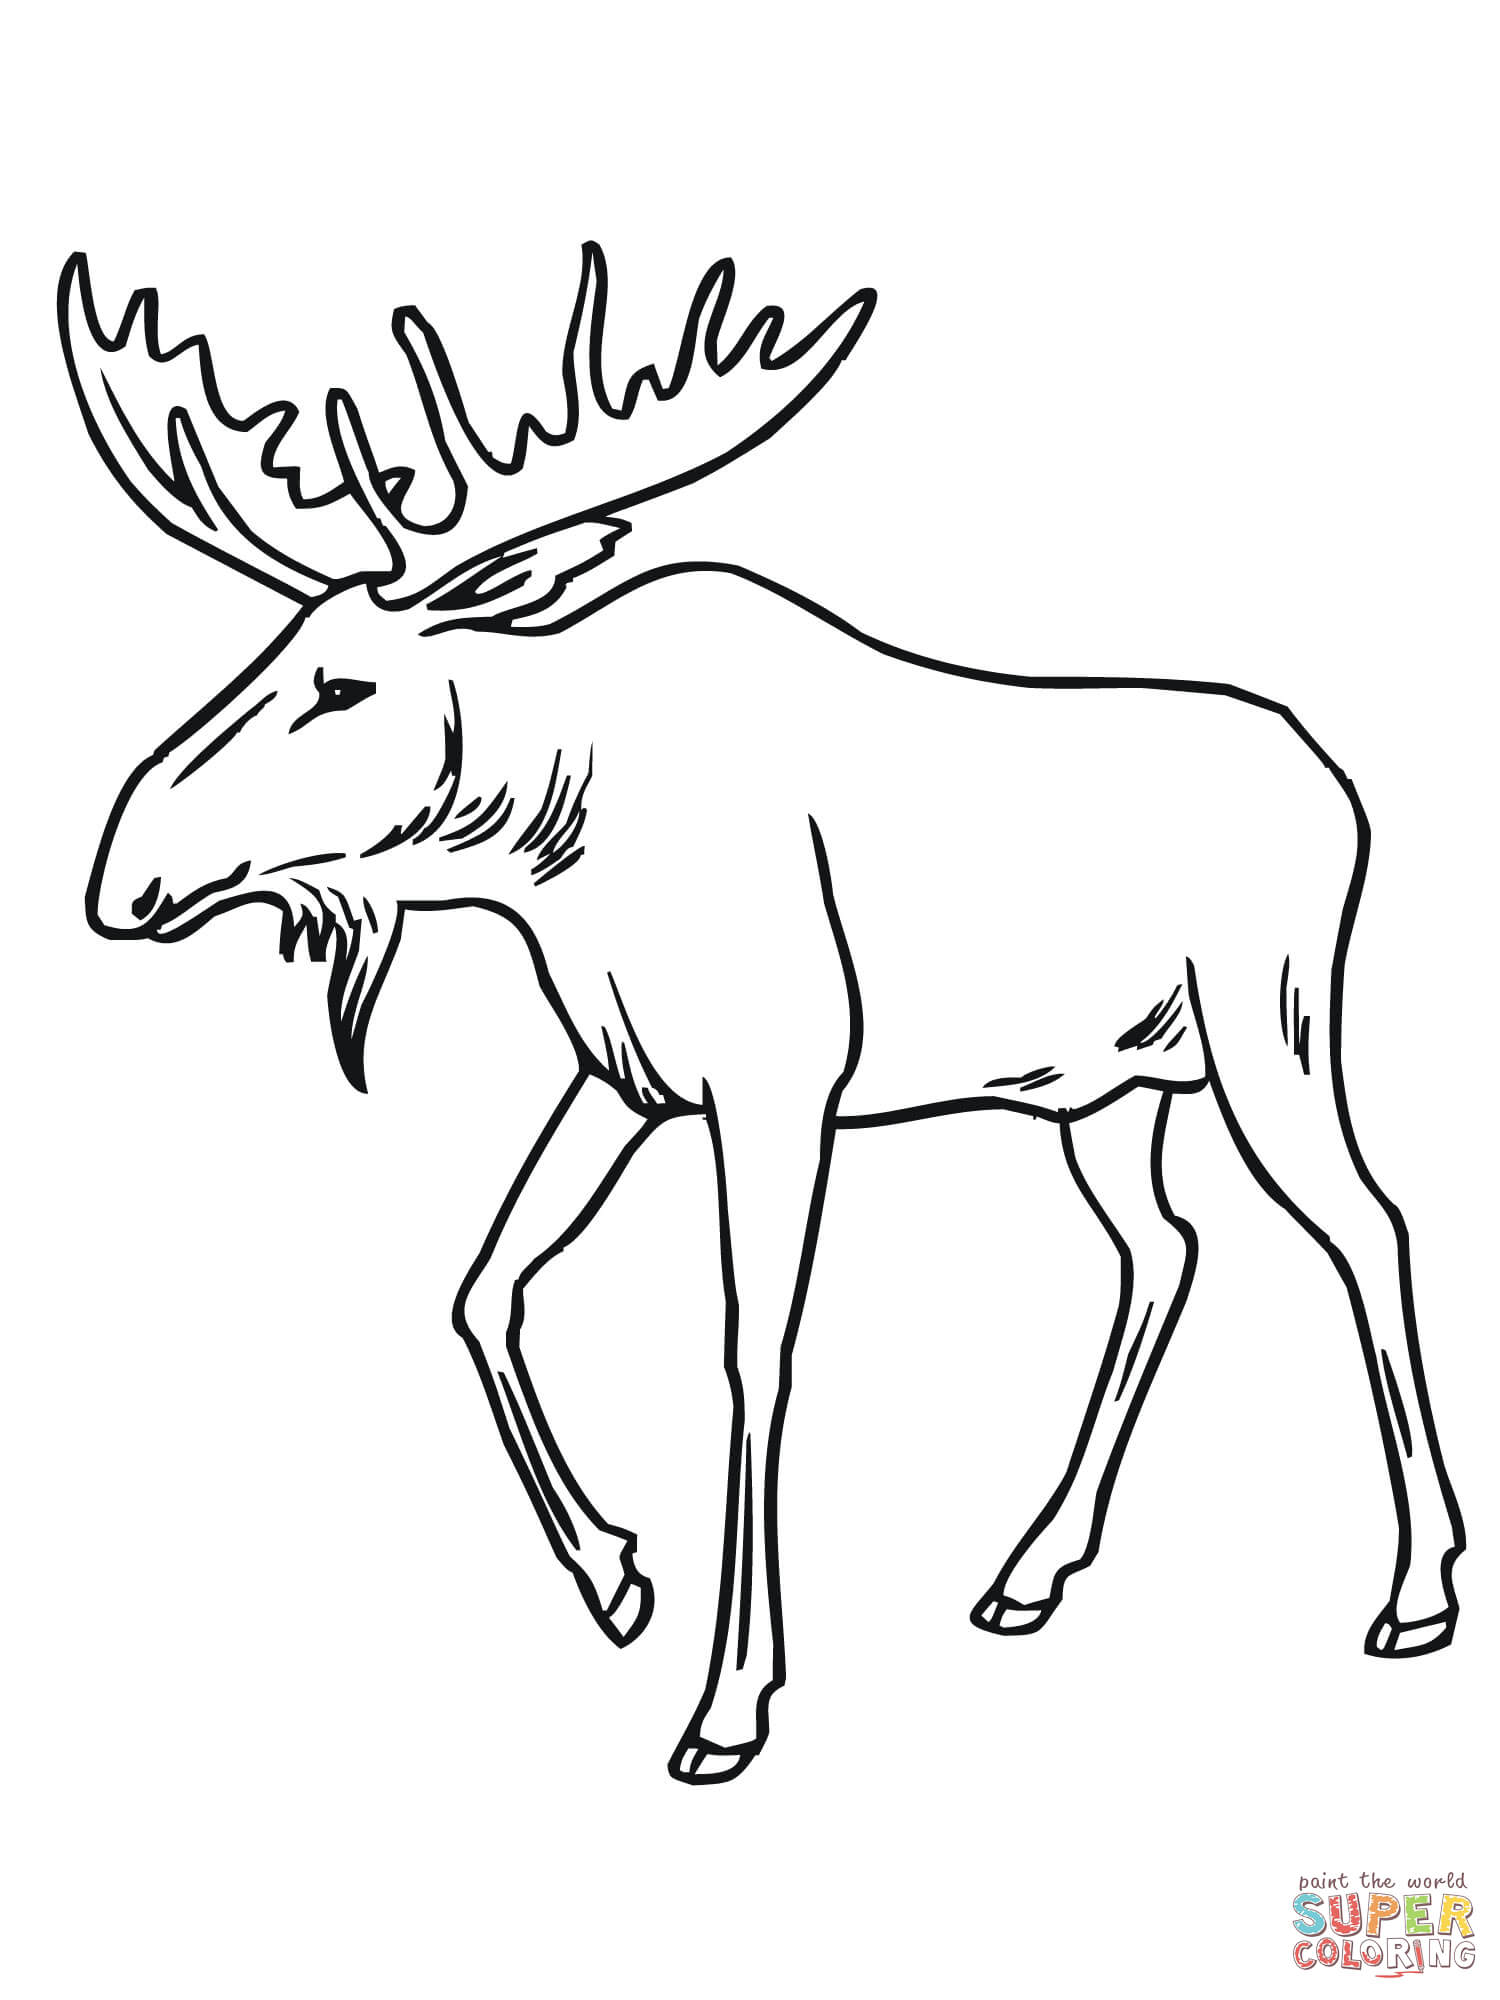 Bull Moose Coloring Page